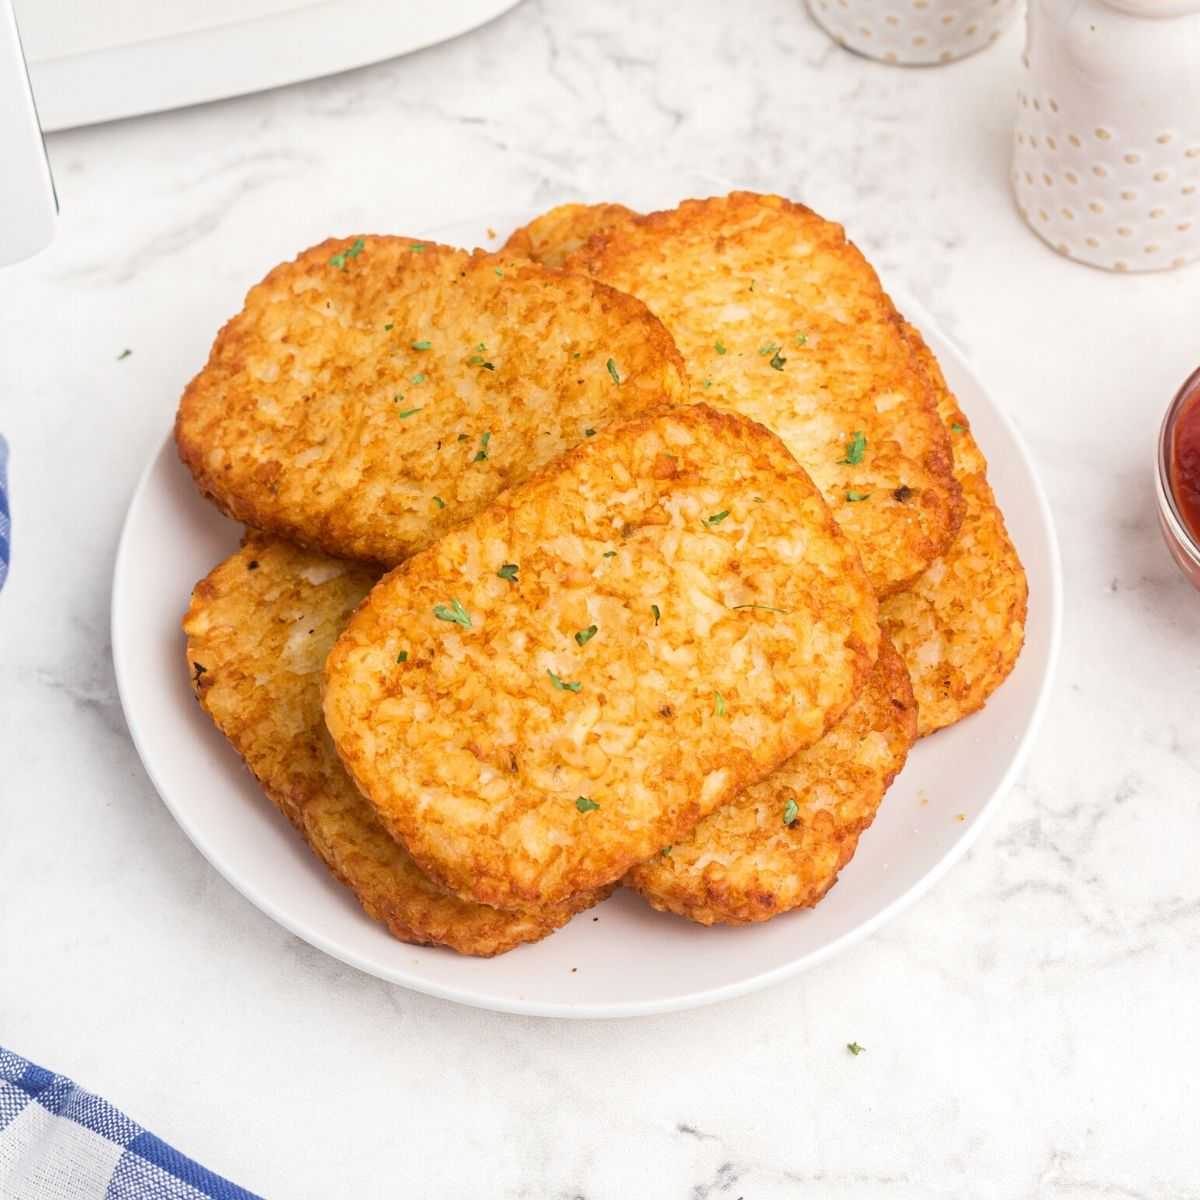 golden hash brown patties on a white plate, served with a side of ketchup.